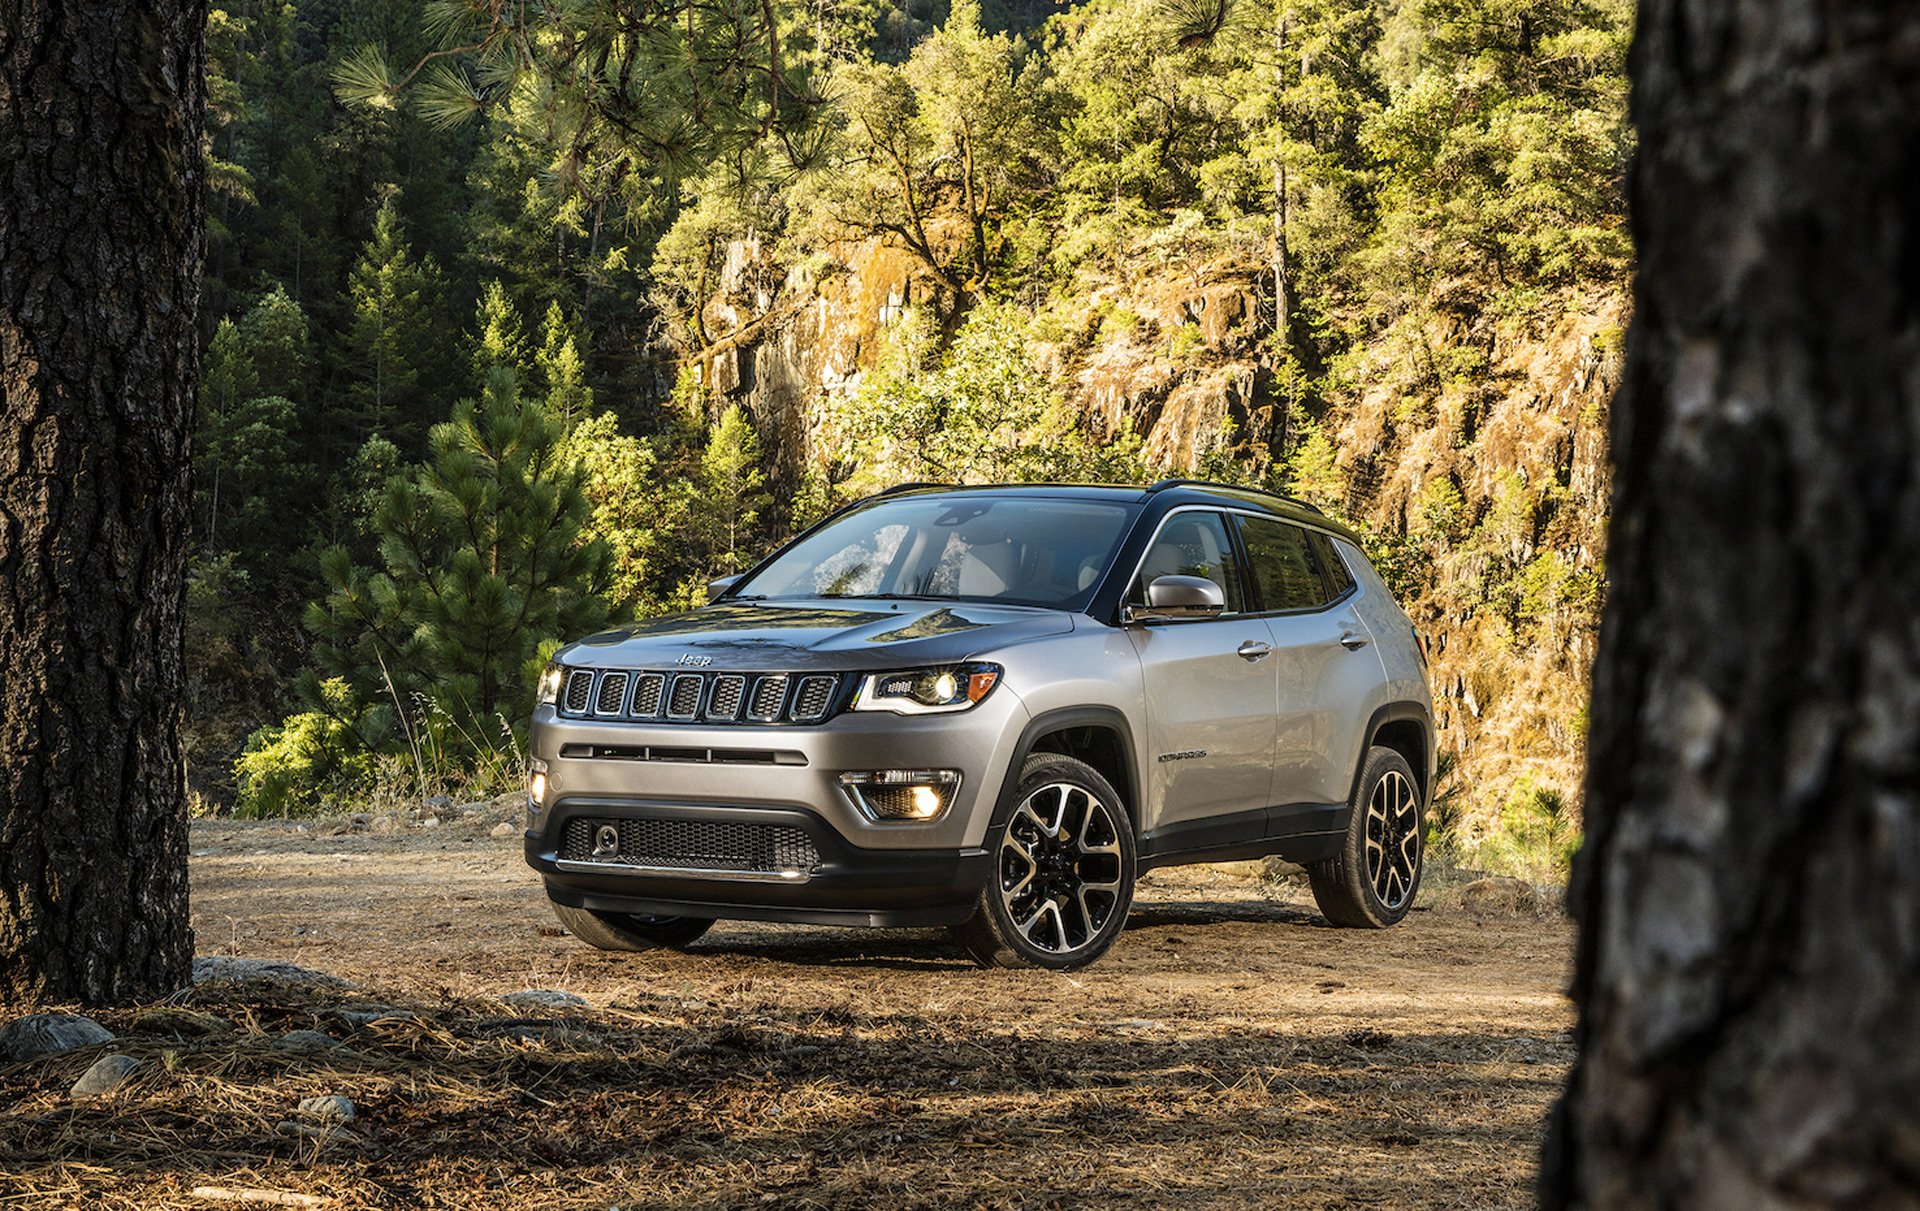 2017 jeep compass launched in la new small suv for growing jeep lineup. Black Bedroom Furniture Sets. Home Design Ideas